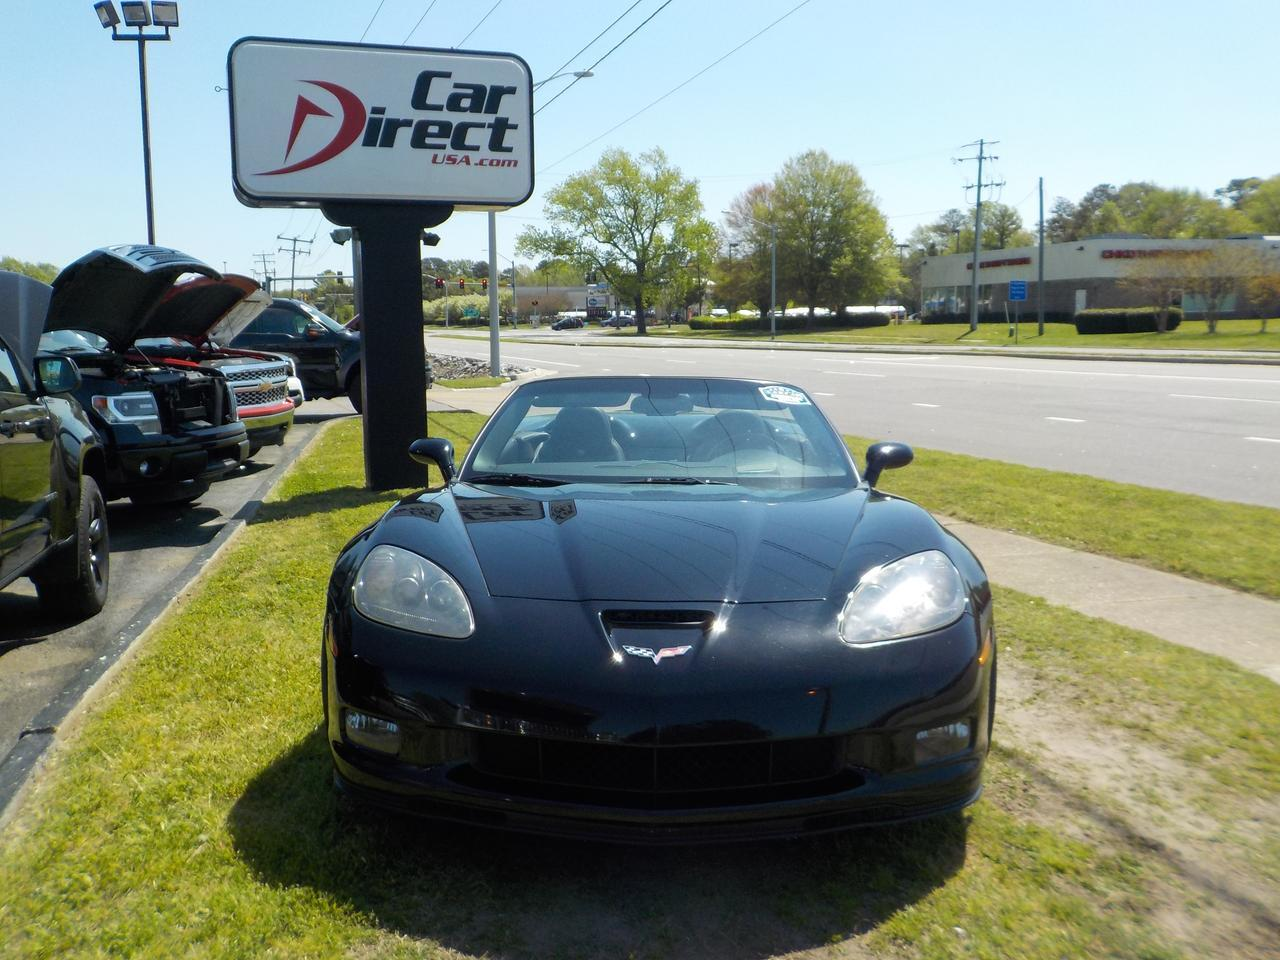 2010 CHEVROLET CORVETTE CONVERTIBLE Z16 GRAND SPORT 3LT, WARRANTY,  POWER TOP, ONSTAR, BLUETOOTH, BOSE SOUND SYSTEM! Virginia Beach VA